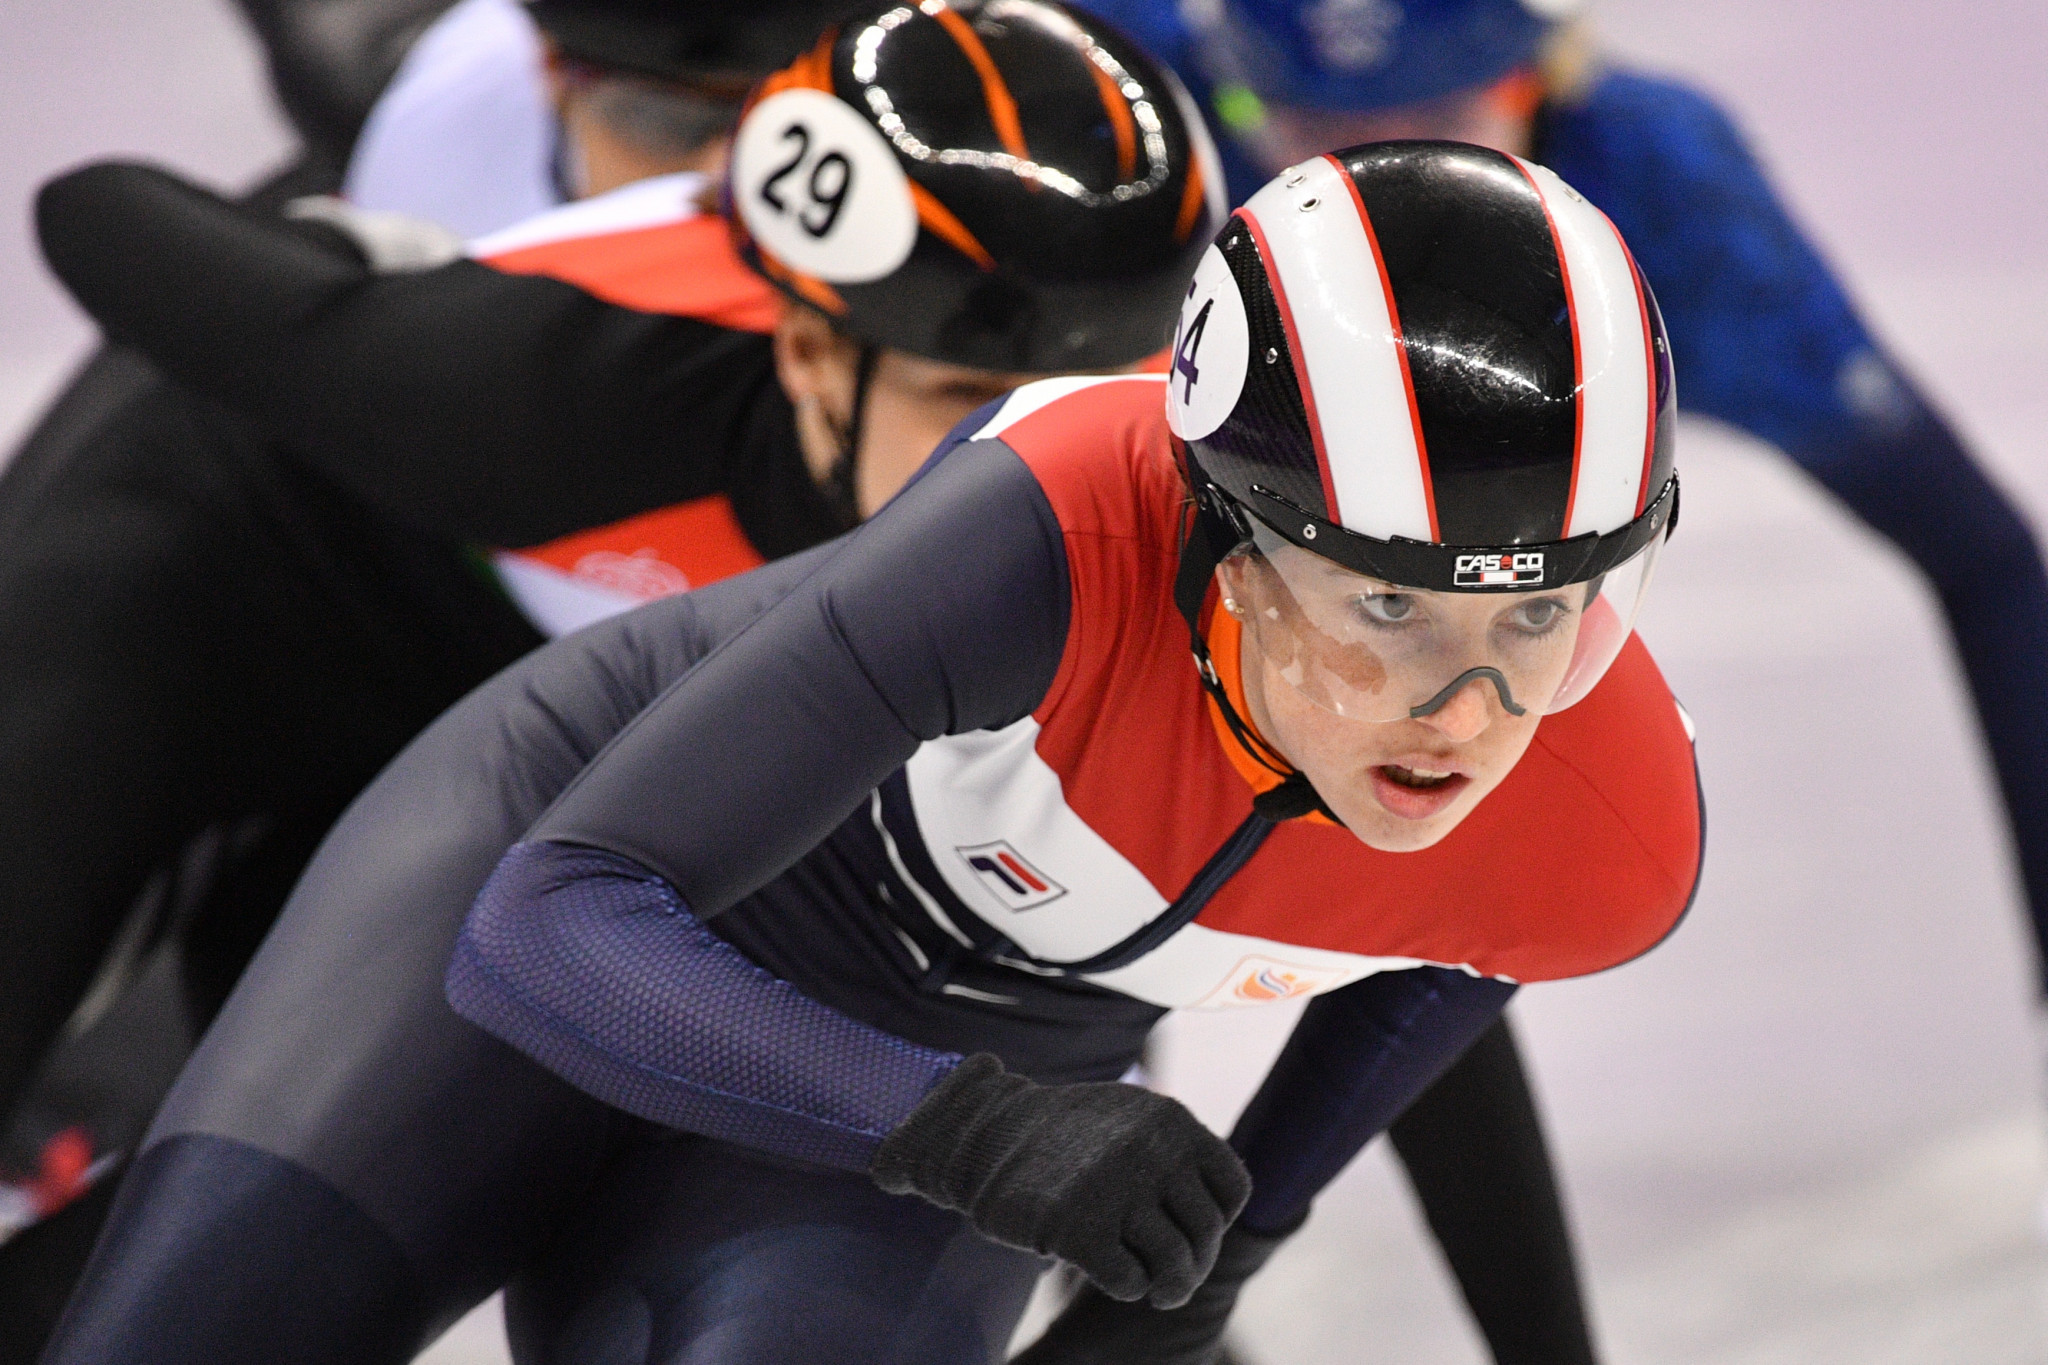 World champion speed skater Van Ruijven dies aged 27